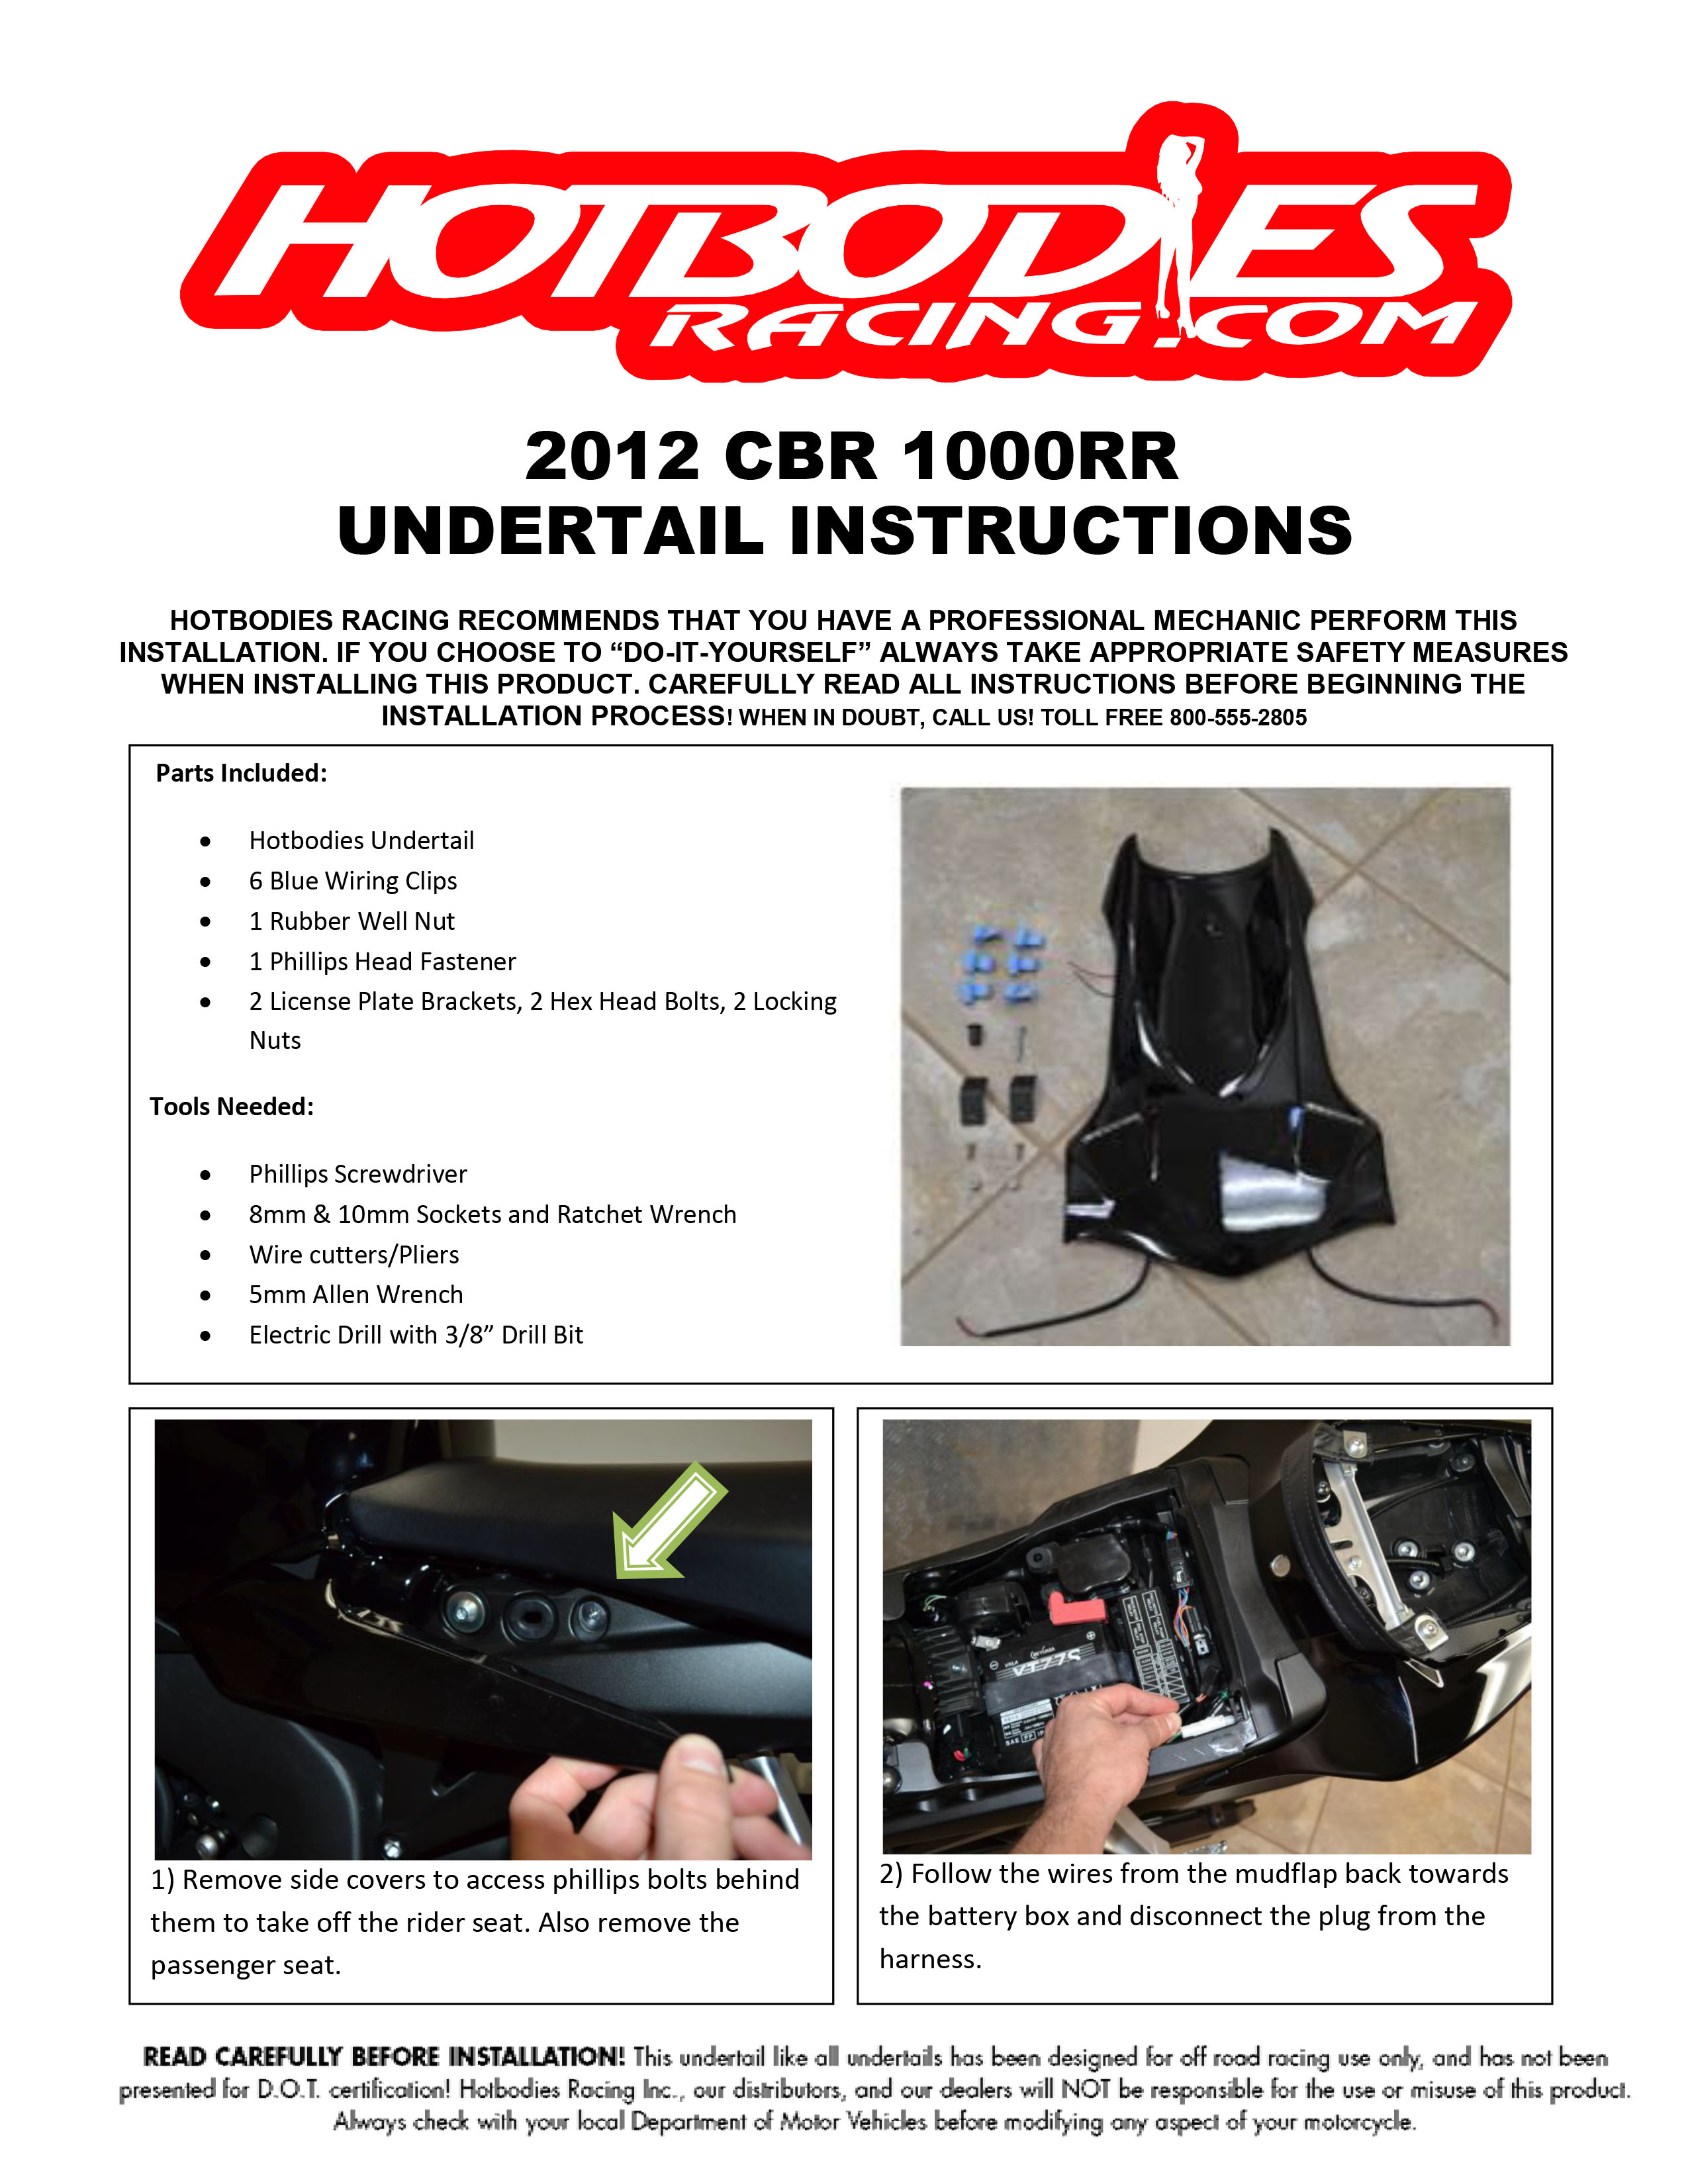 2005 honda cbr600rr wiring diagram 2005 honda goldwing